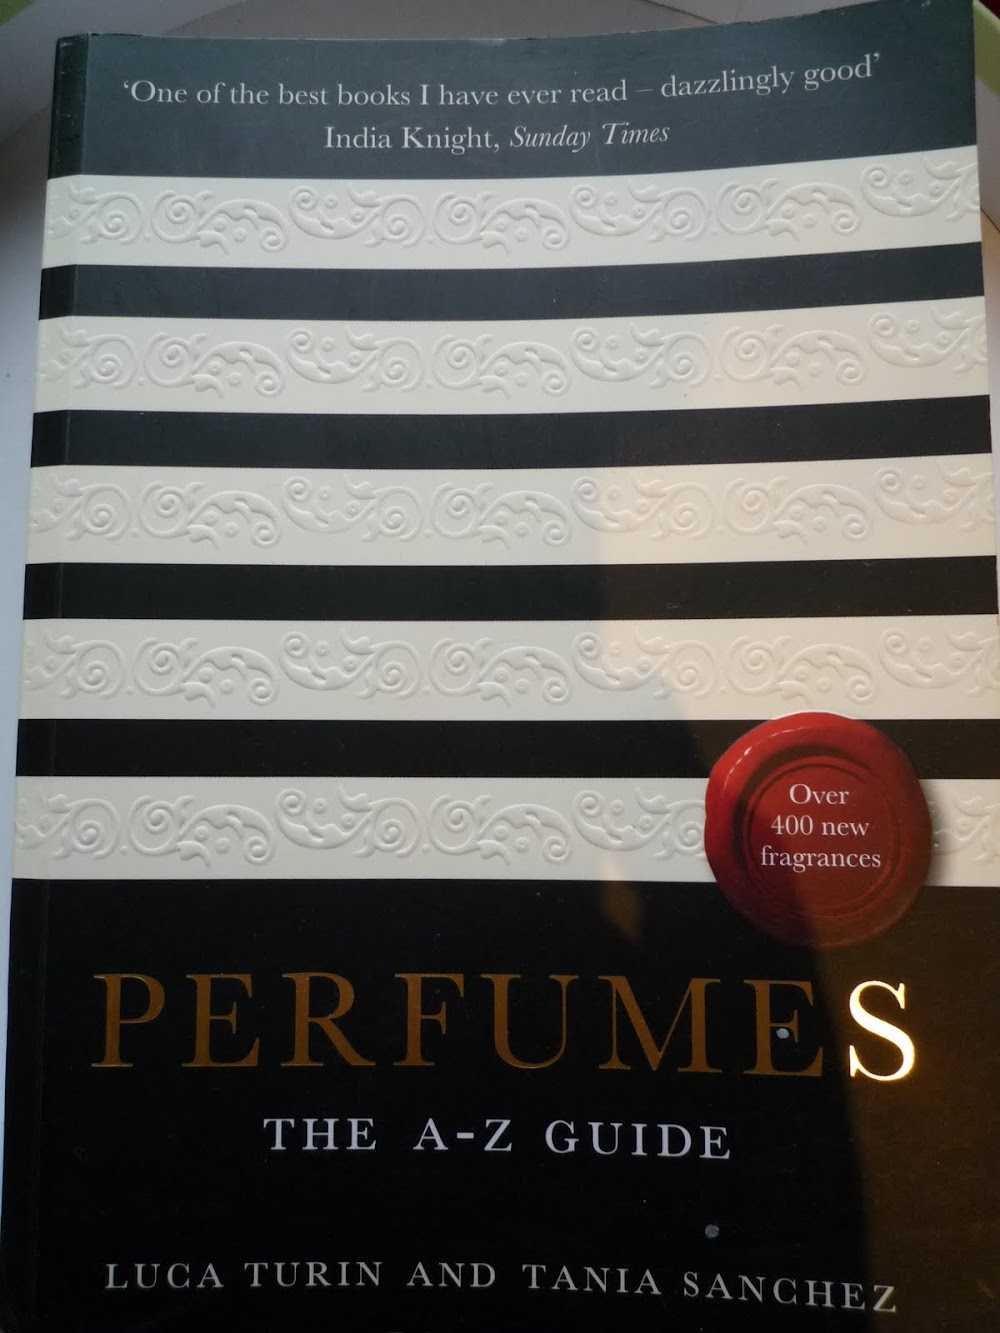 Thanks Luca Turin, Tania Sanchez and Perfumes, The A-Z Guide